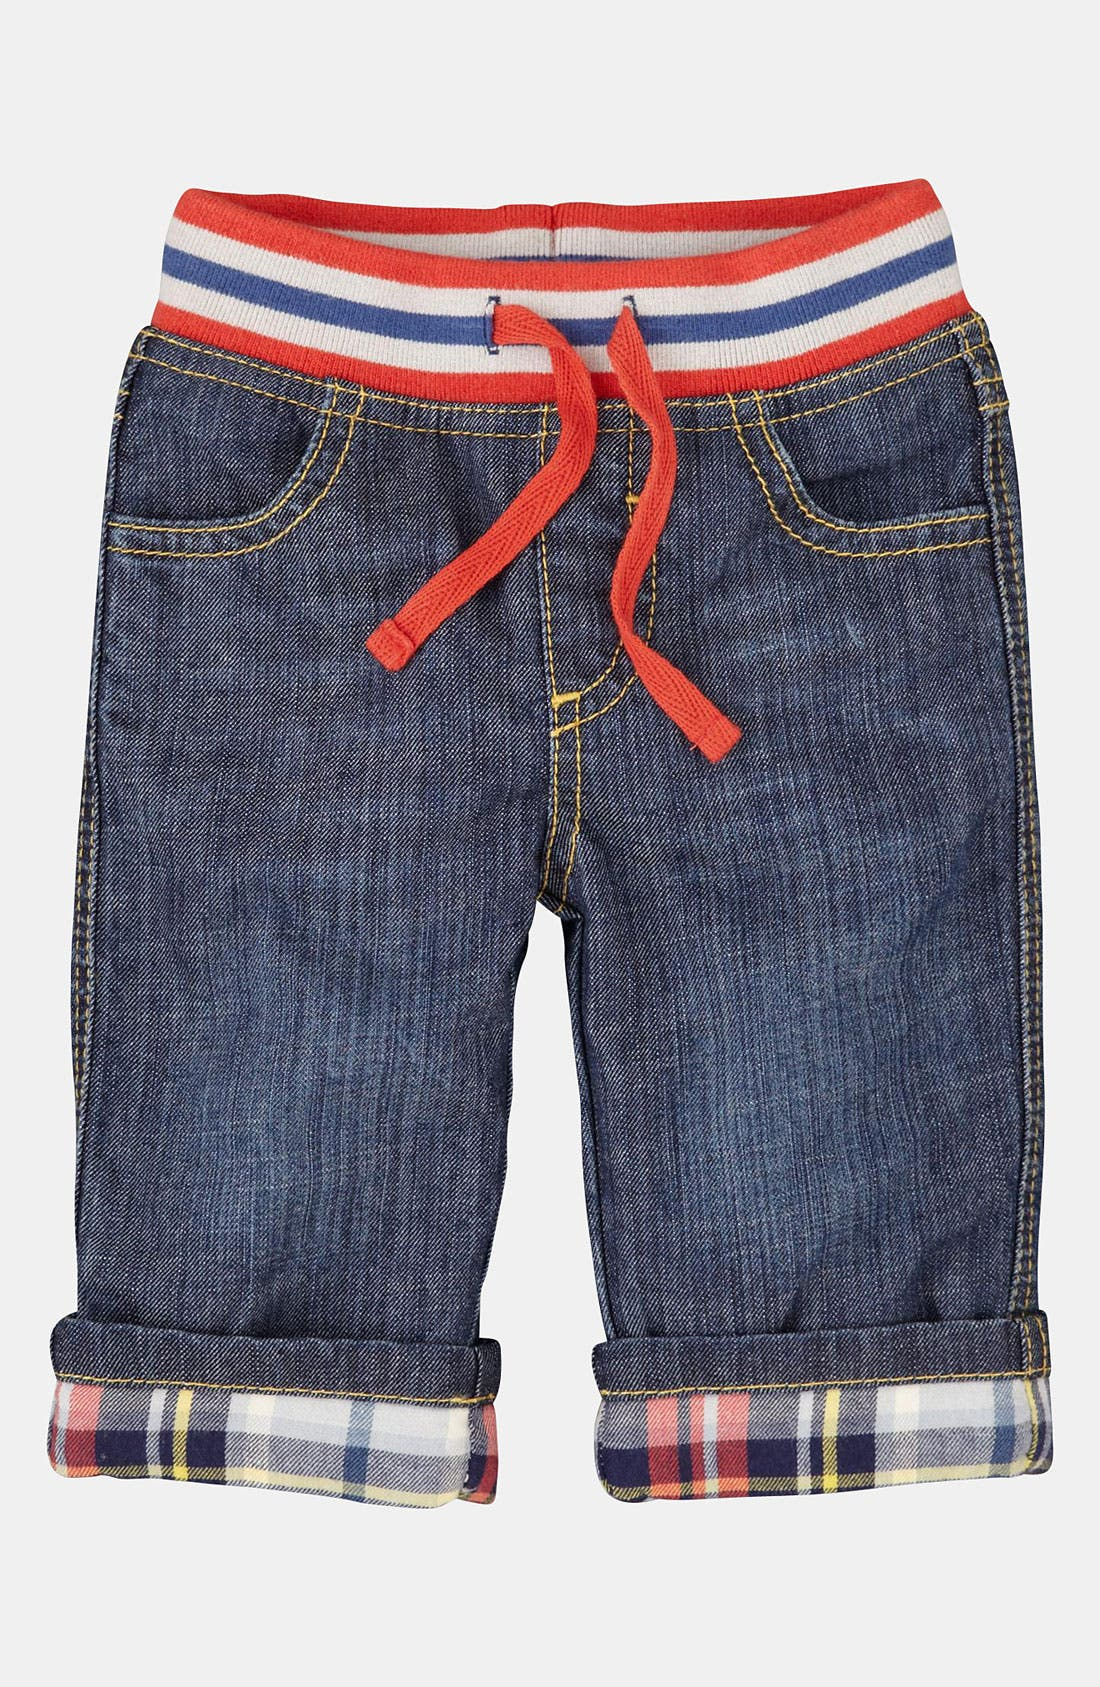 Alternate Image 1 Selected - Mini Boden 'Baby' Jeans (Infant)